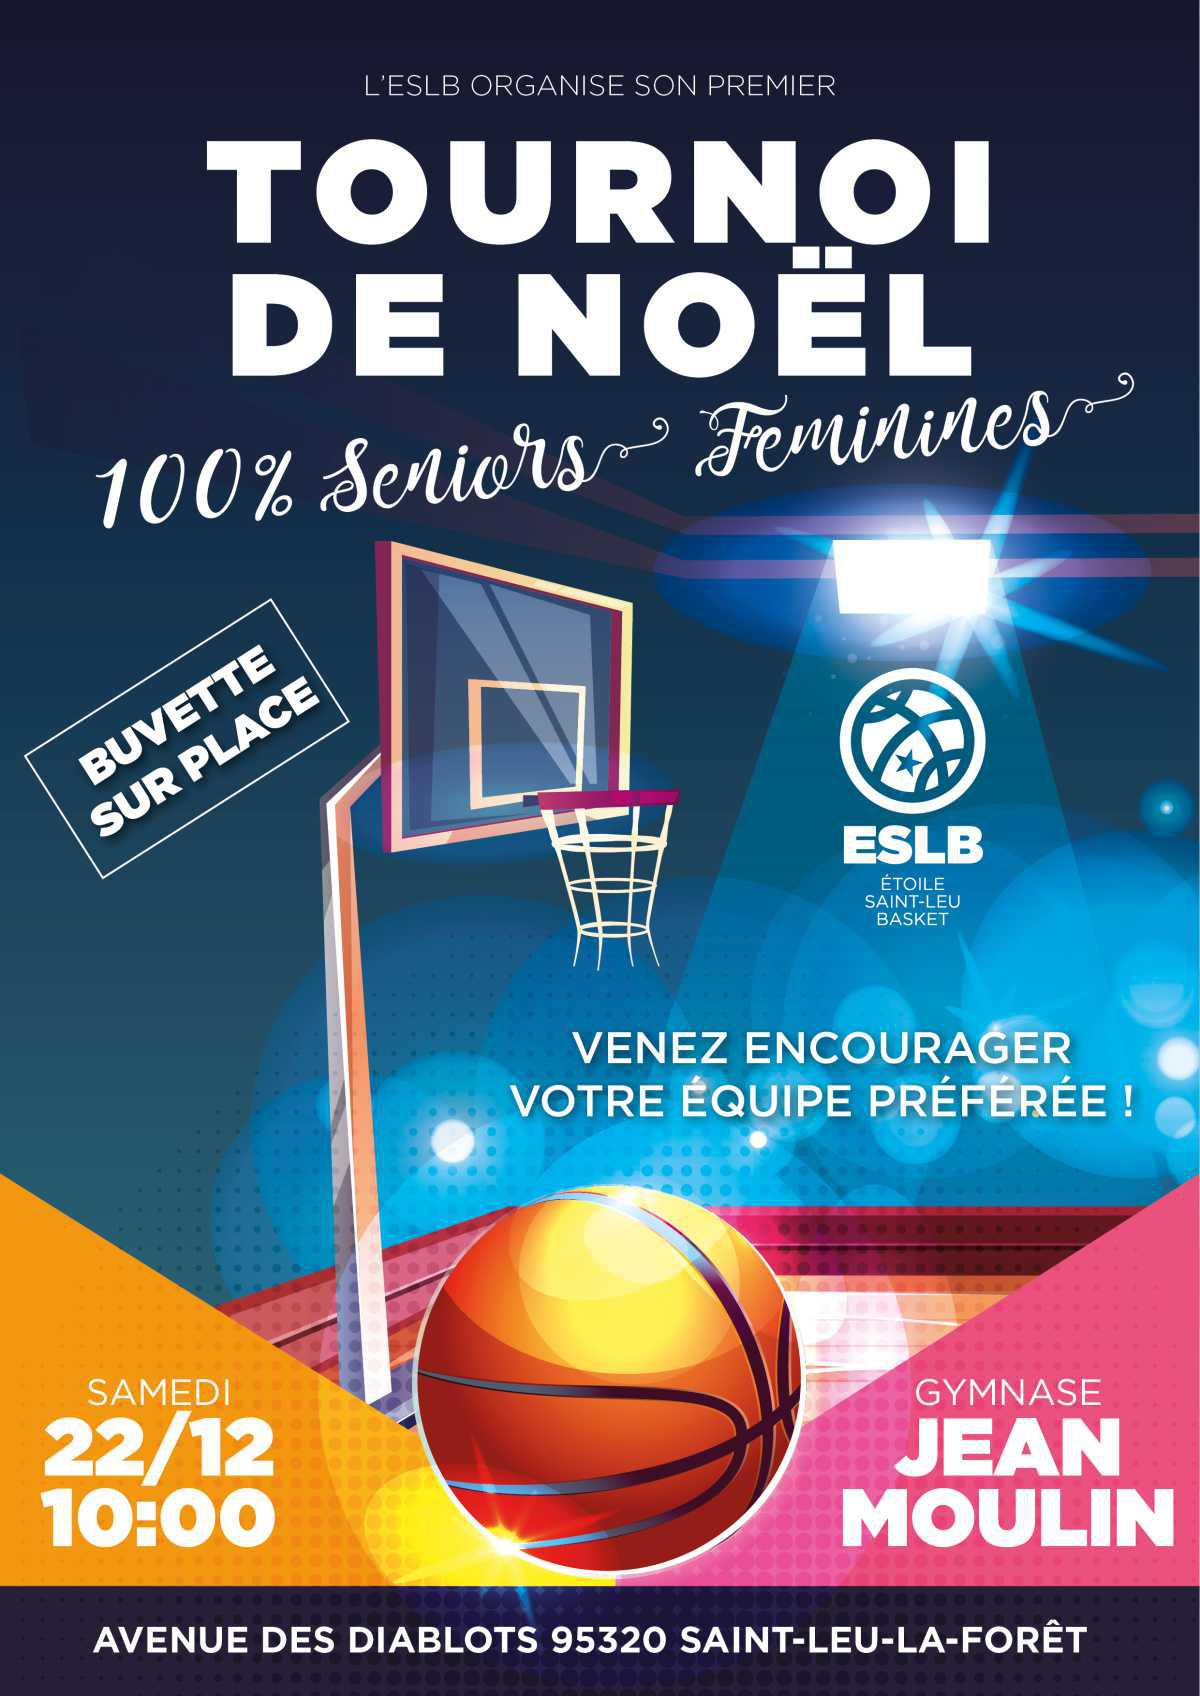 Un super tournoi de Noël